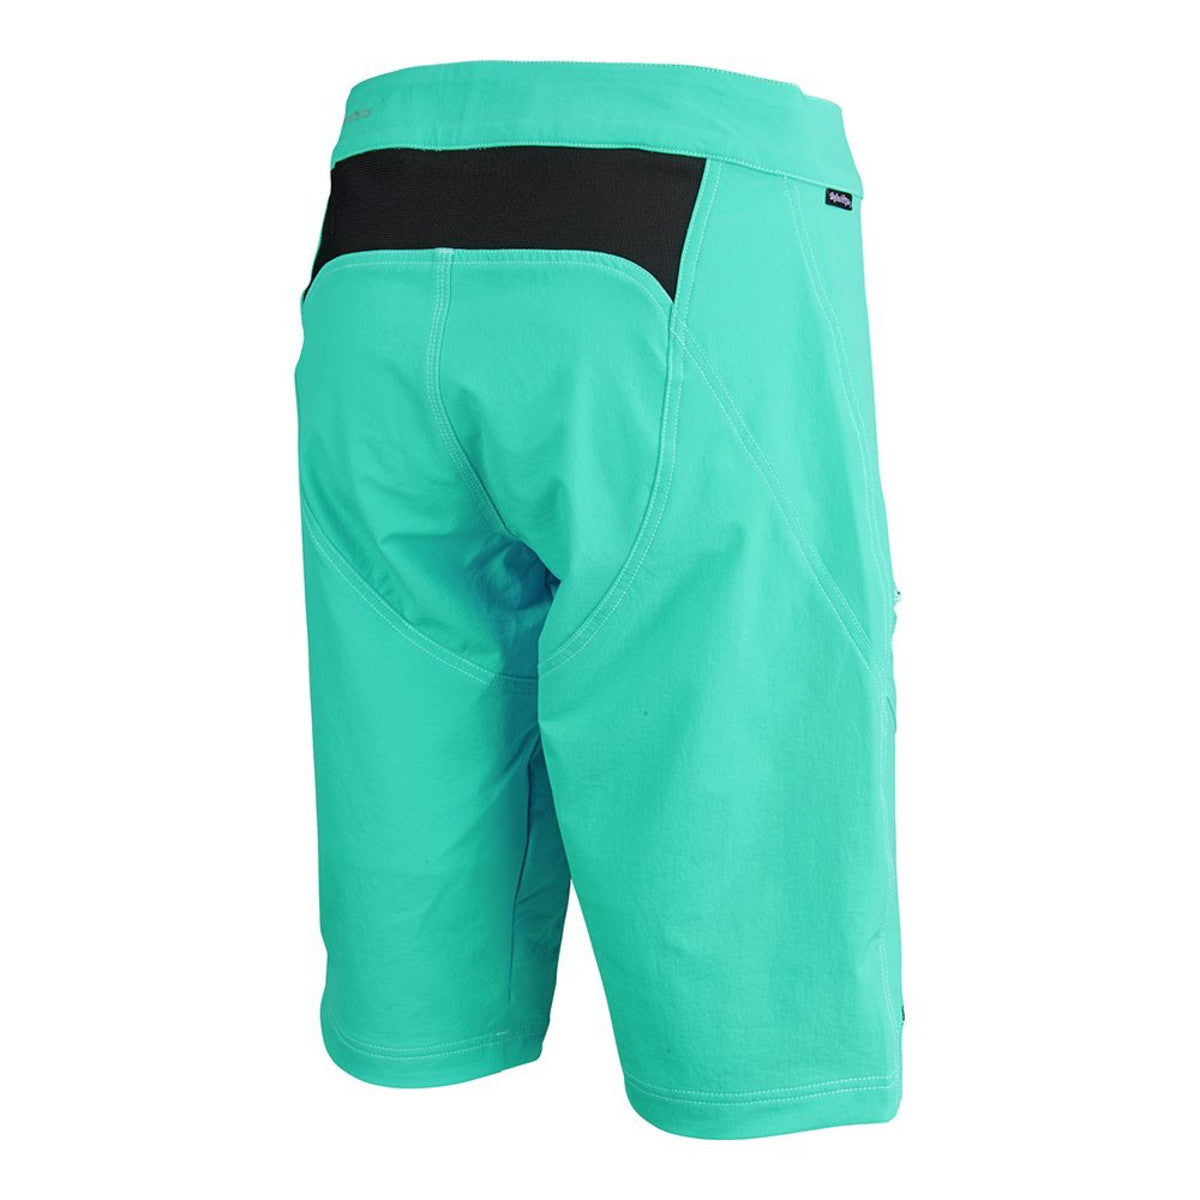 Ruckus Womens Short - Turquoise by Troy Lee Designs